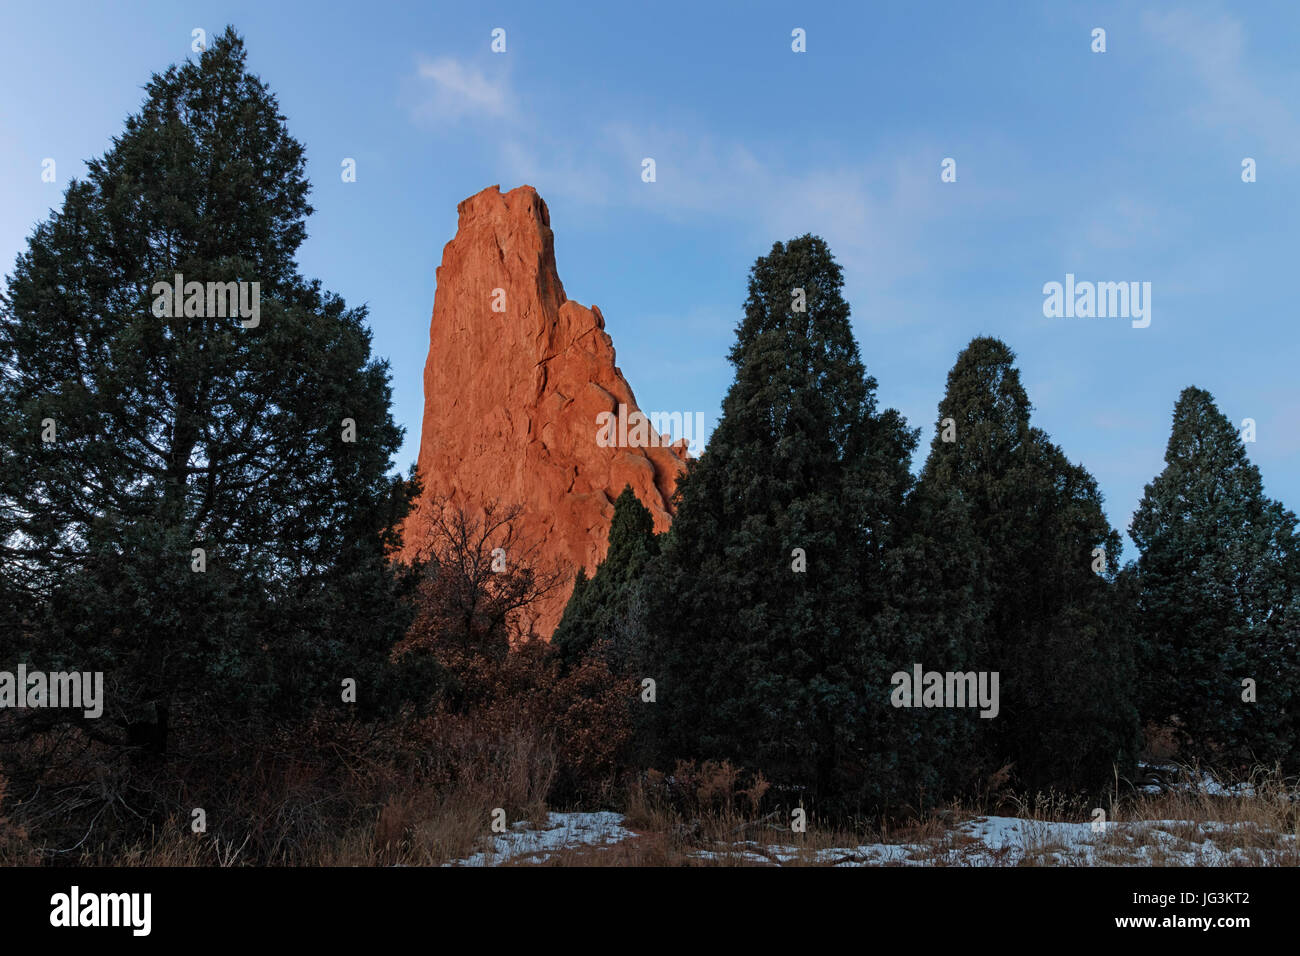 A pillar of sandstone rock tries to fit in with a group of trees at Garden of the Gods, Colorado Springs, Colorado. Stock Photo